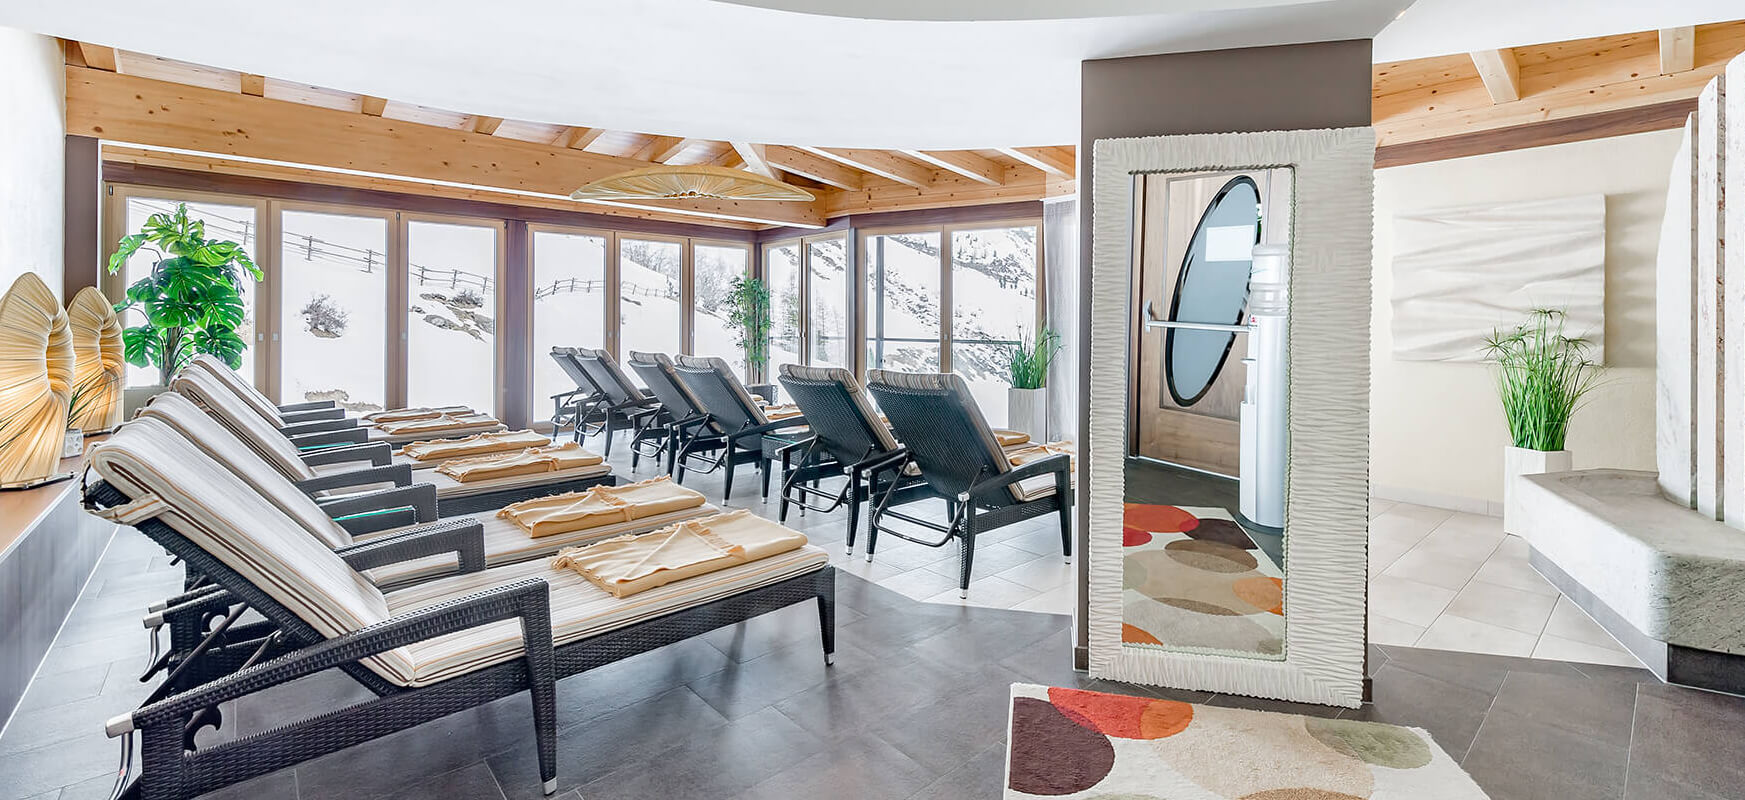 wellness area at Hotel Madeleine Obergurgl